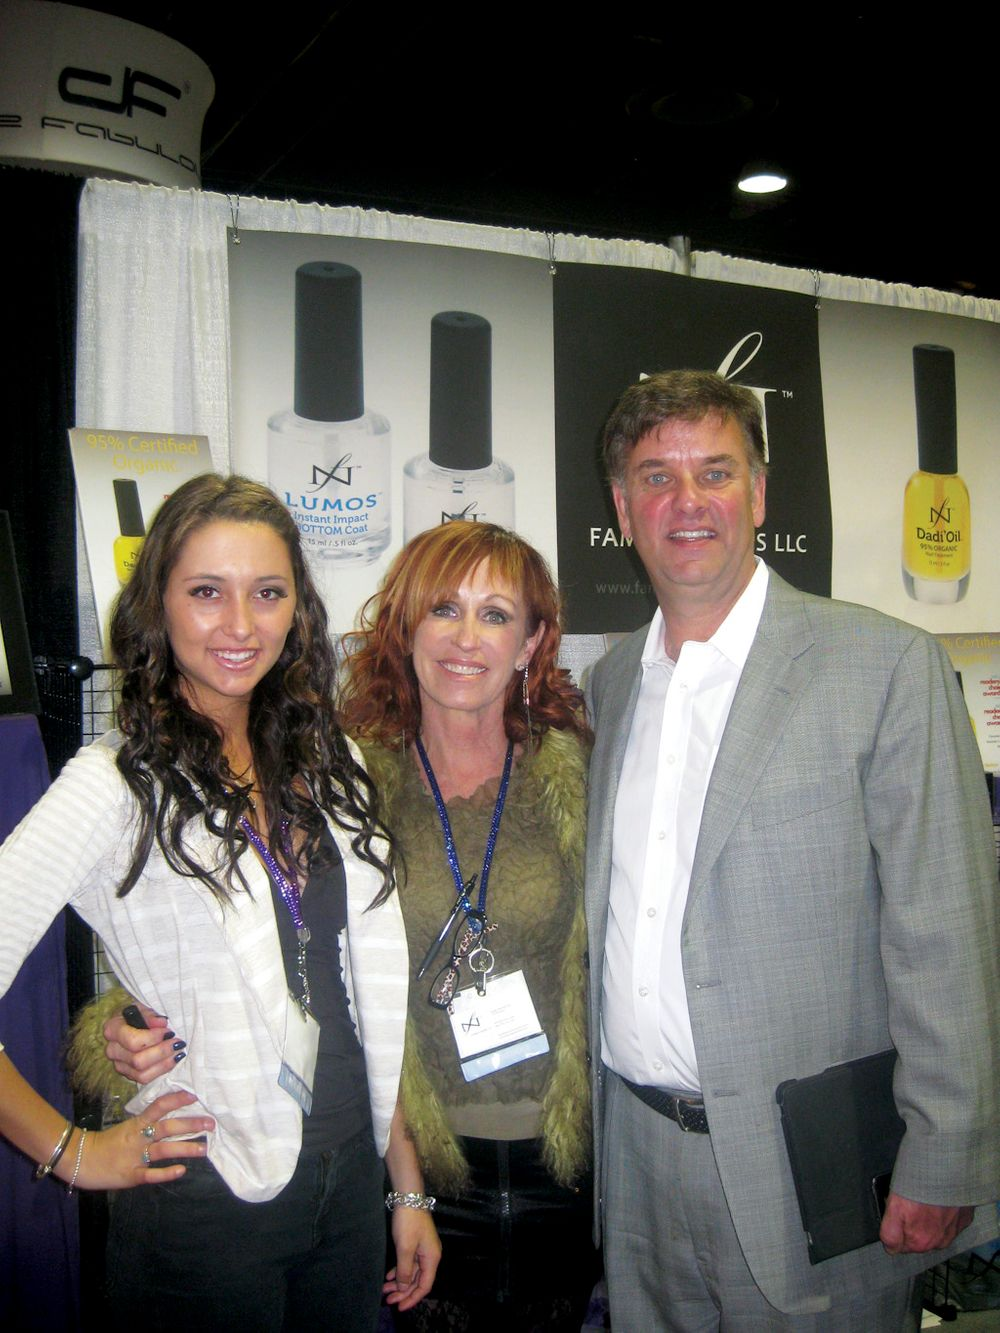 <p>Niki, Jim, and Linda Nordstrom gave attendees the &ldquo;Dadi&rsquo;Oil Challenge,&rdquo; which was a blind test of the company&rsquo;s cuticle oil versus two competitors&rsquo; oils.</p>